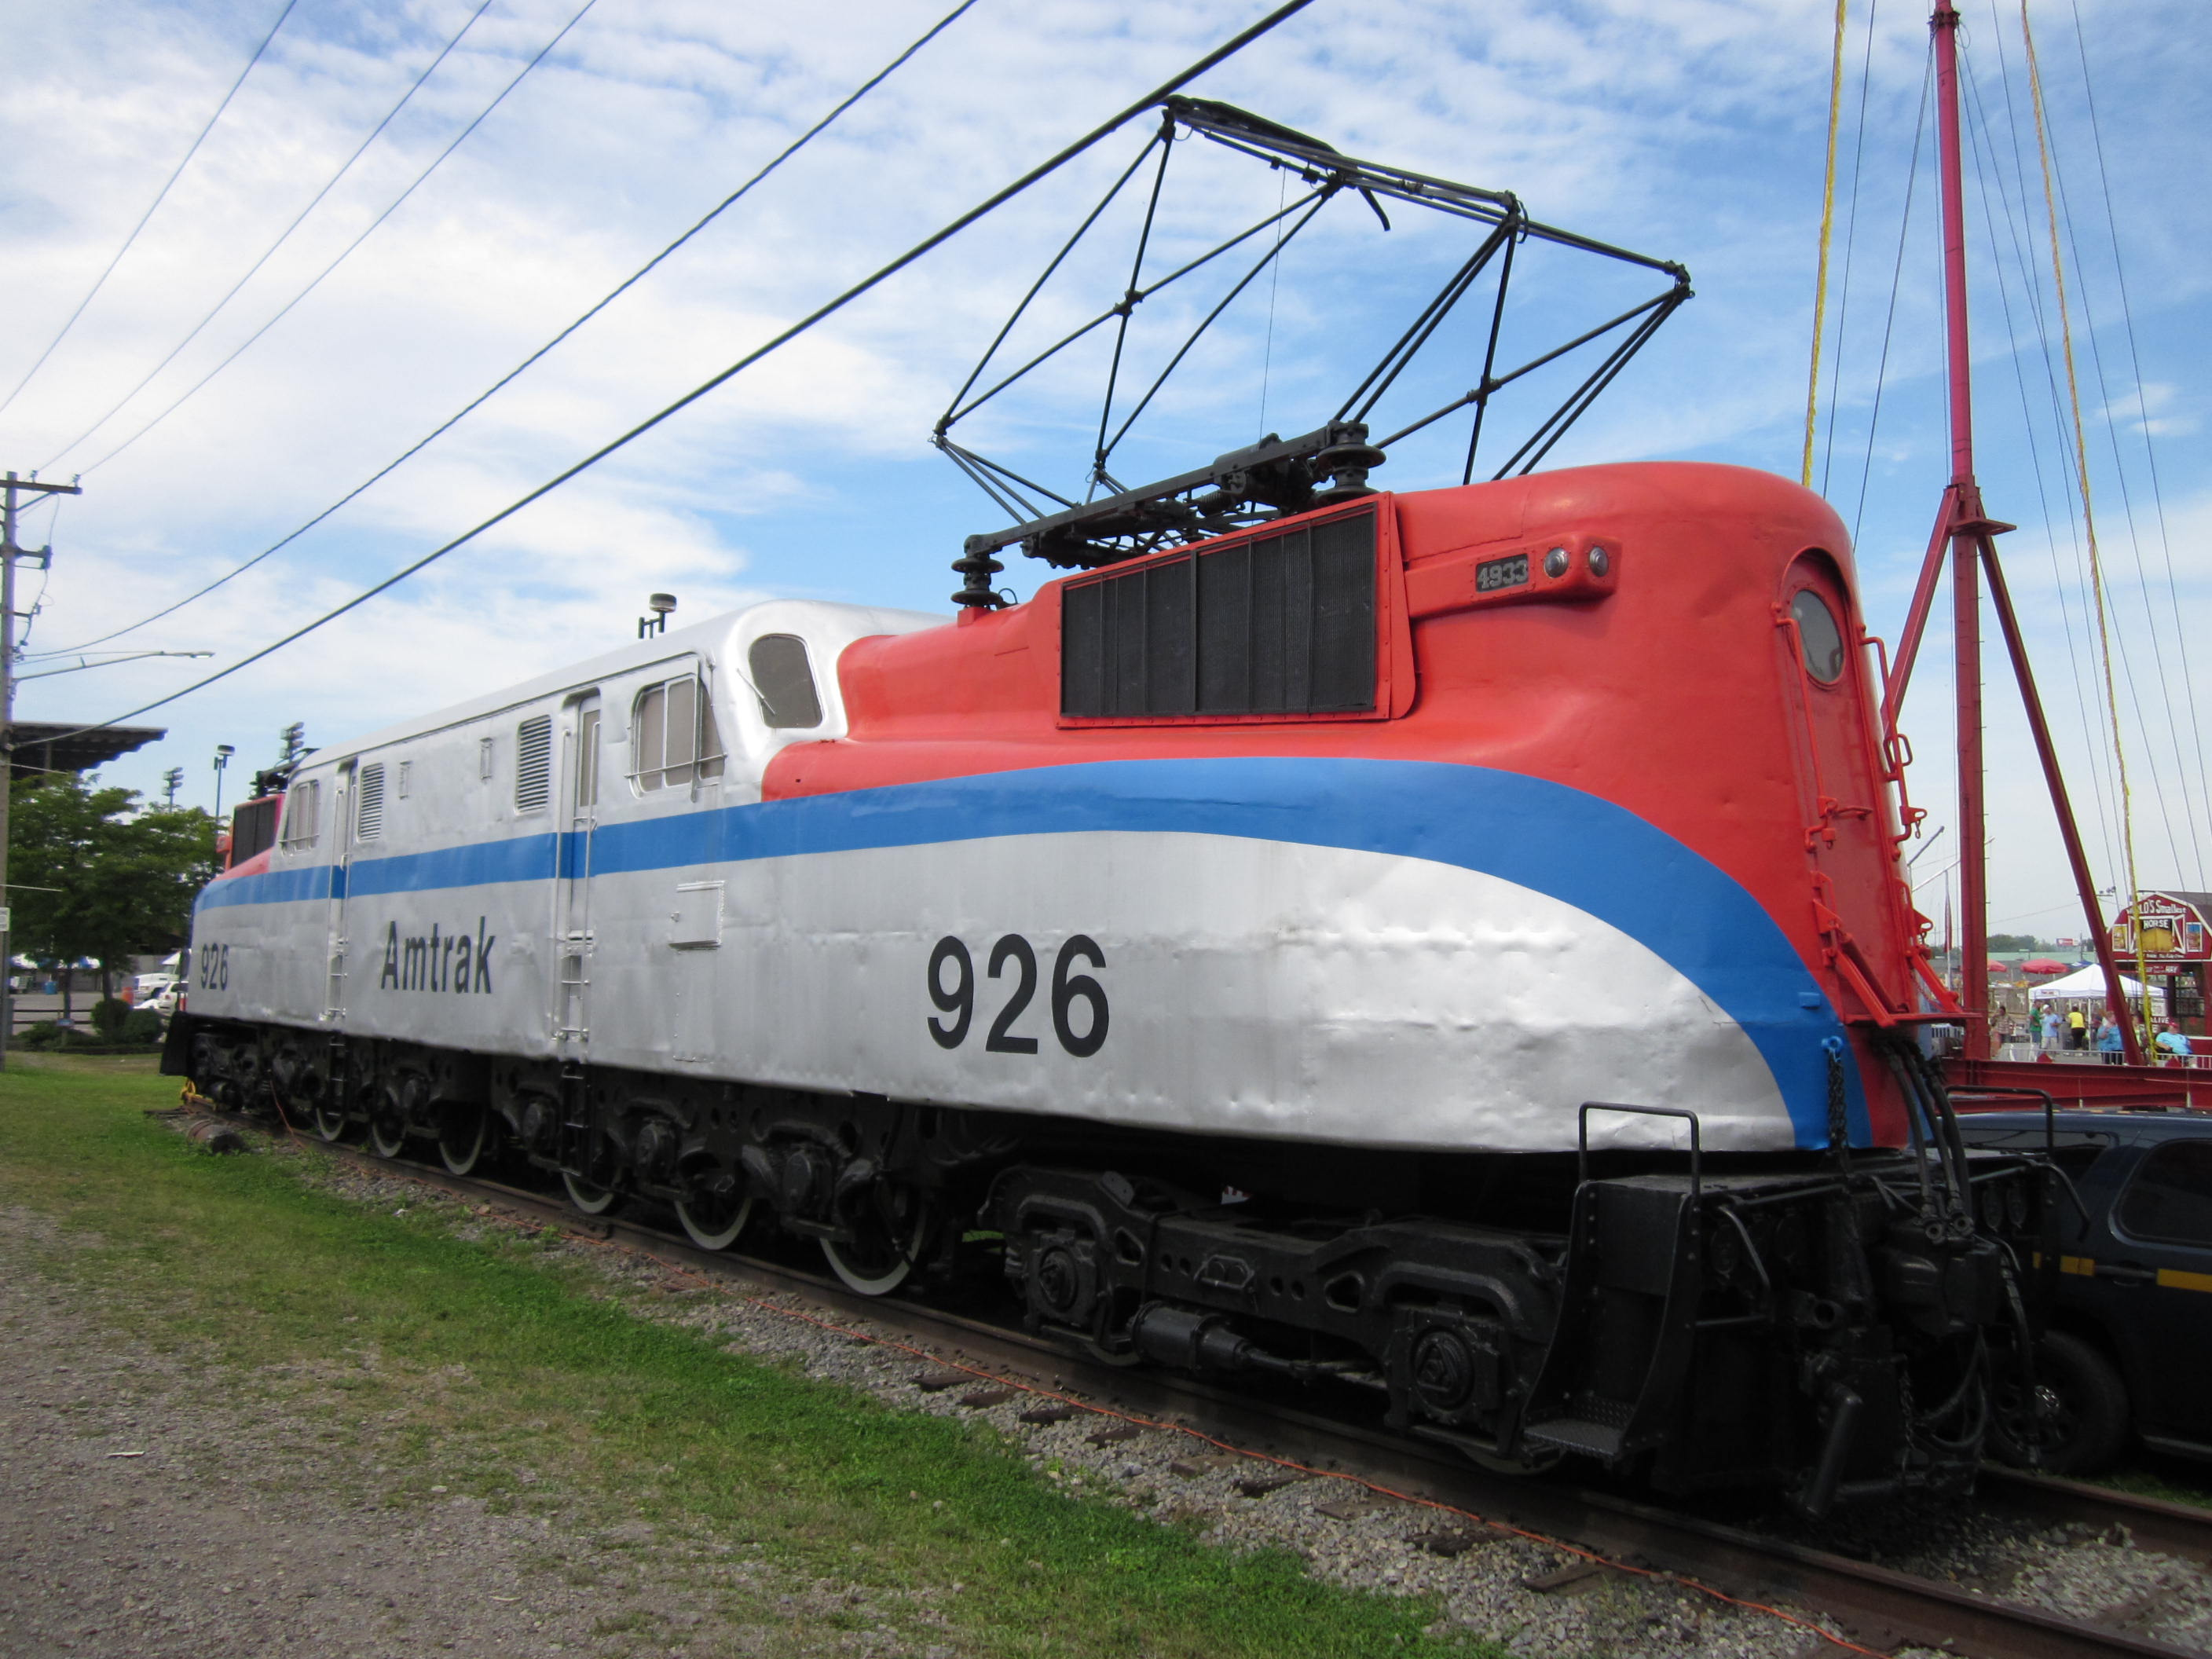 File:Amtrak 926 at The Great New York State Fair - Syracuse, New York